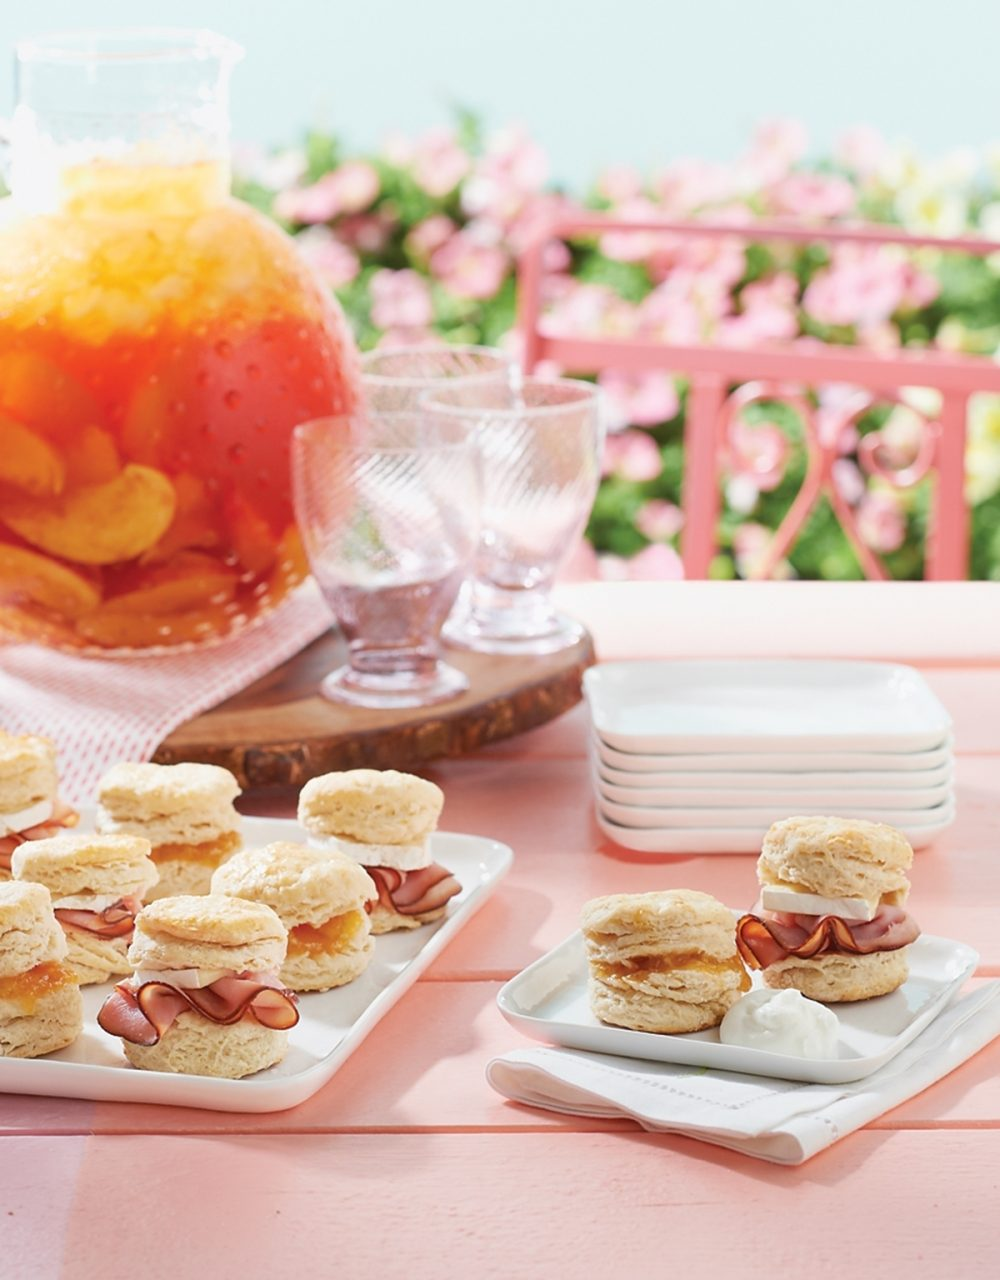 A versatile recipe, Biscuit Stacks can be served in savory and sweet ways; either is great accompanied by Peach Iced Tea.